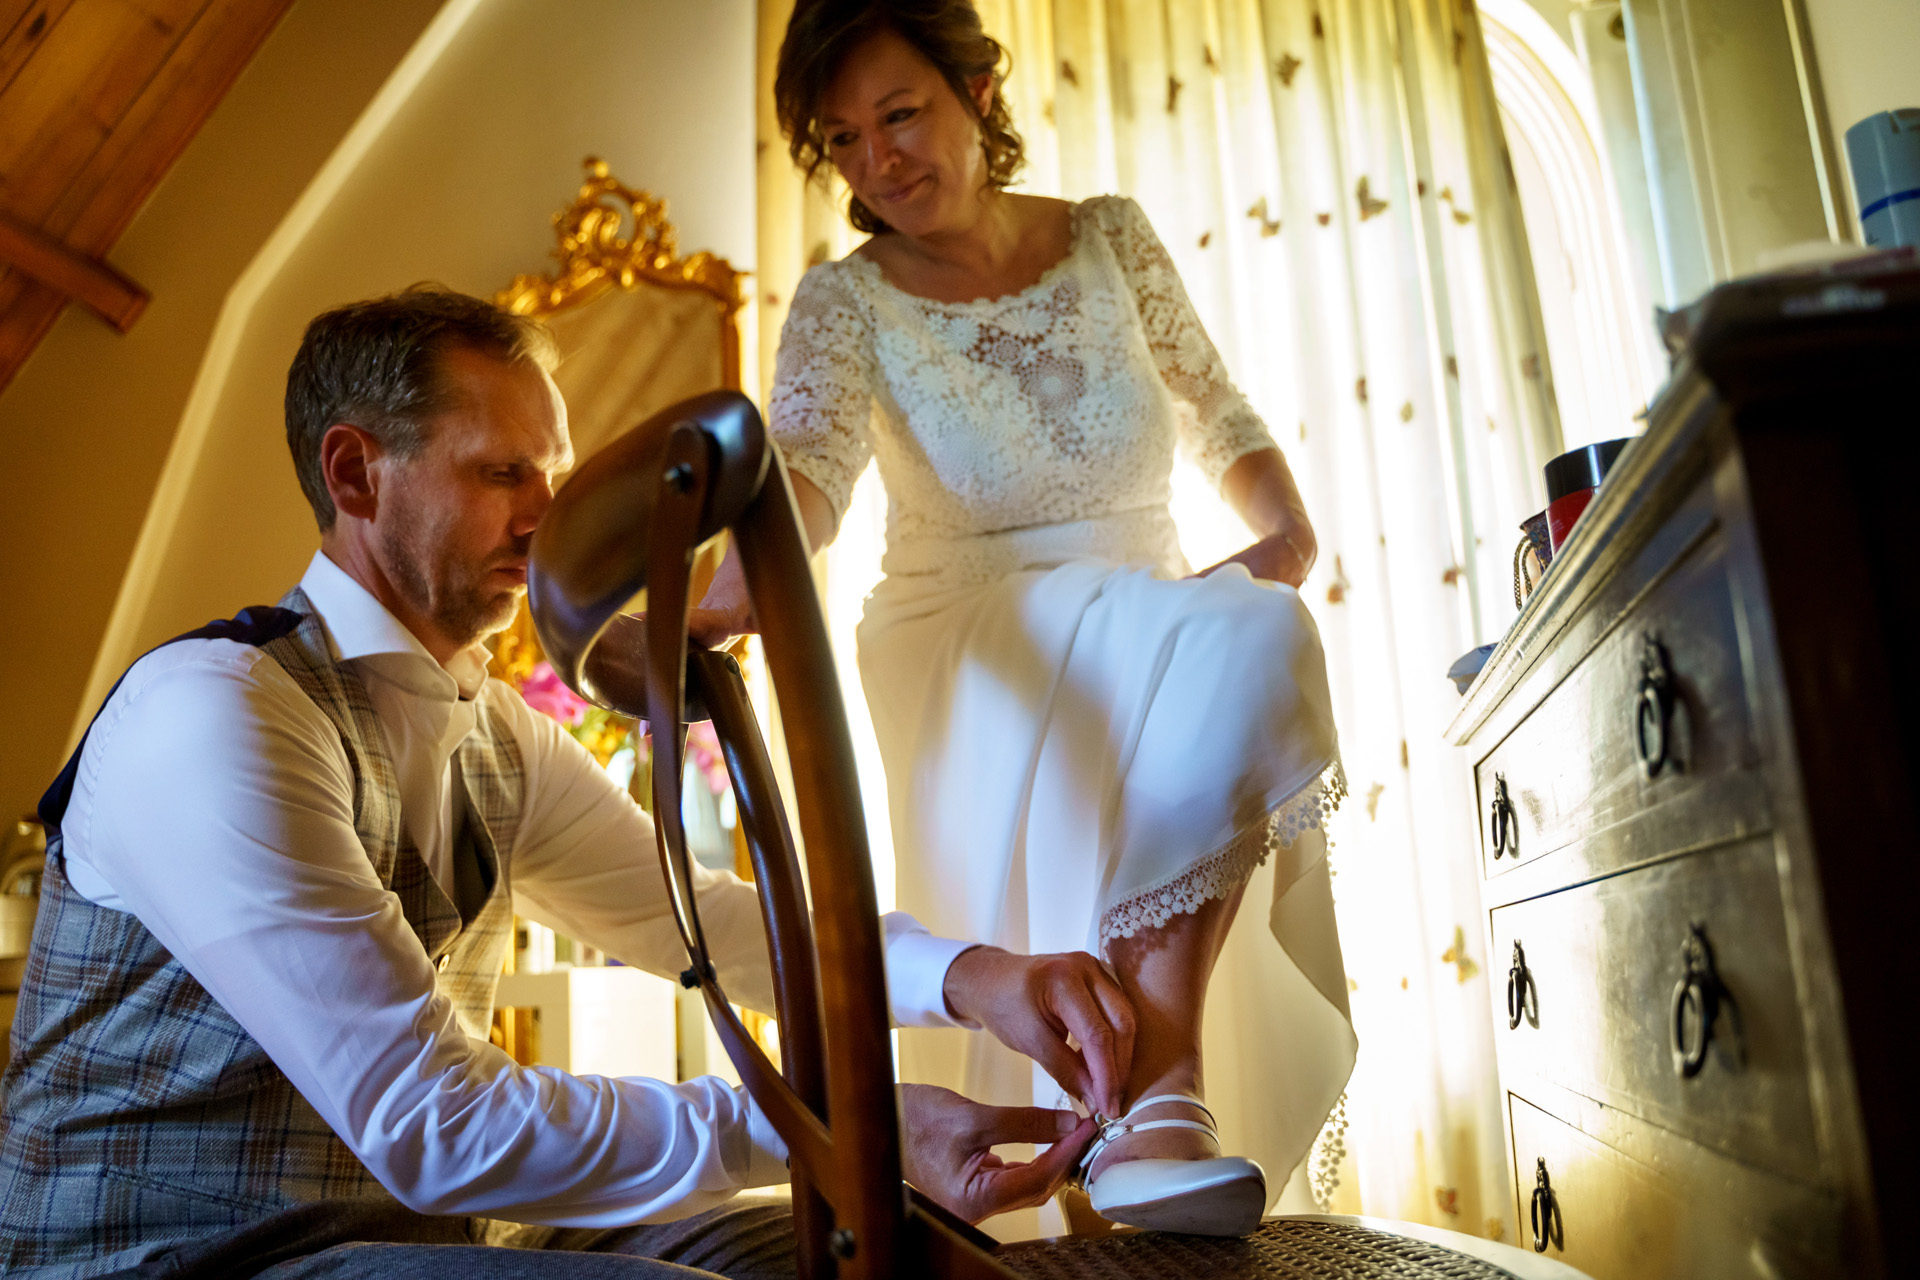 Gaia Hotel, Netherlands Elopement Picture | The bride smiles endearingly